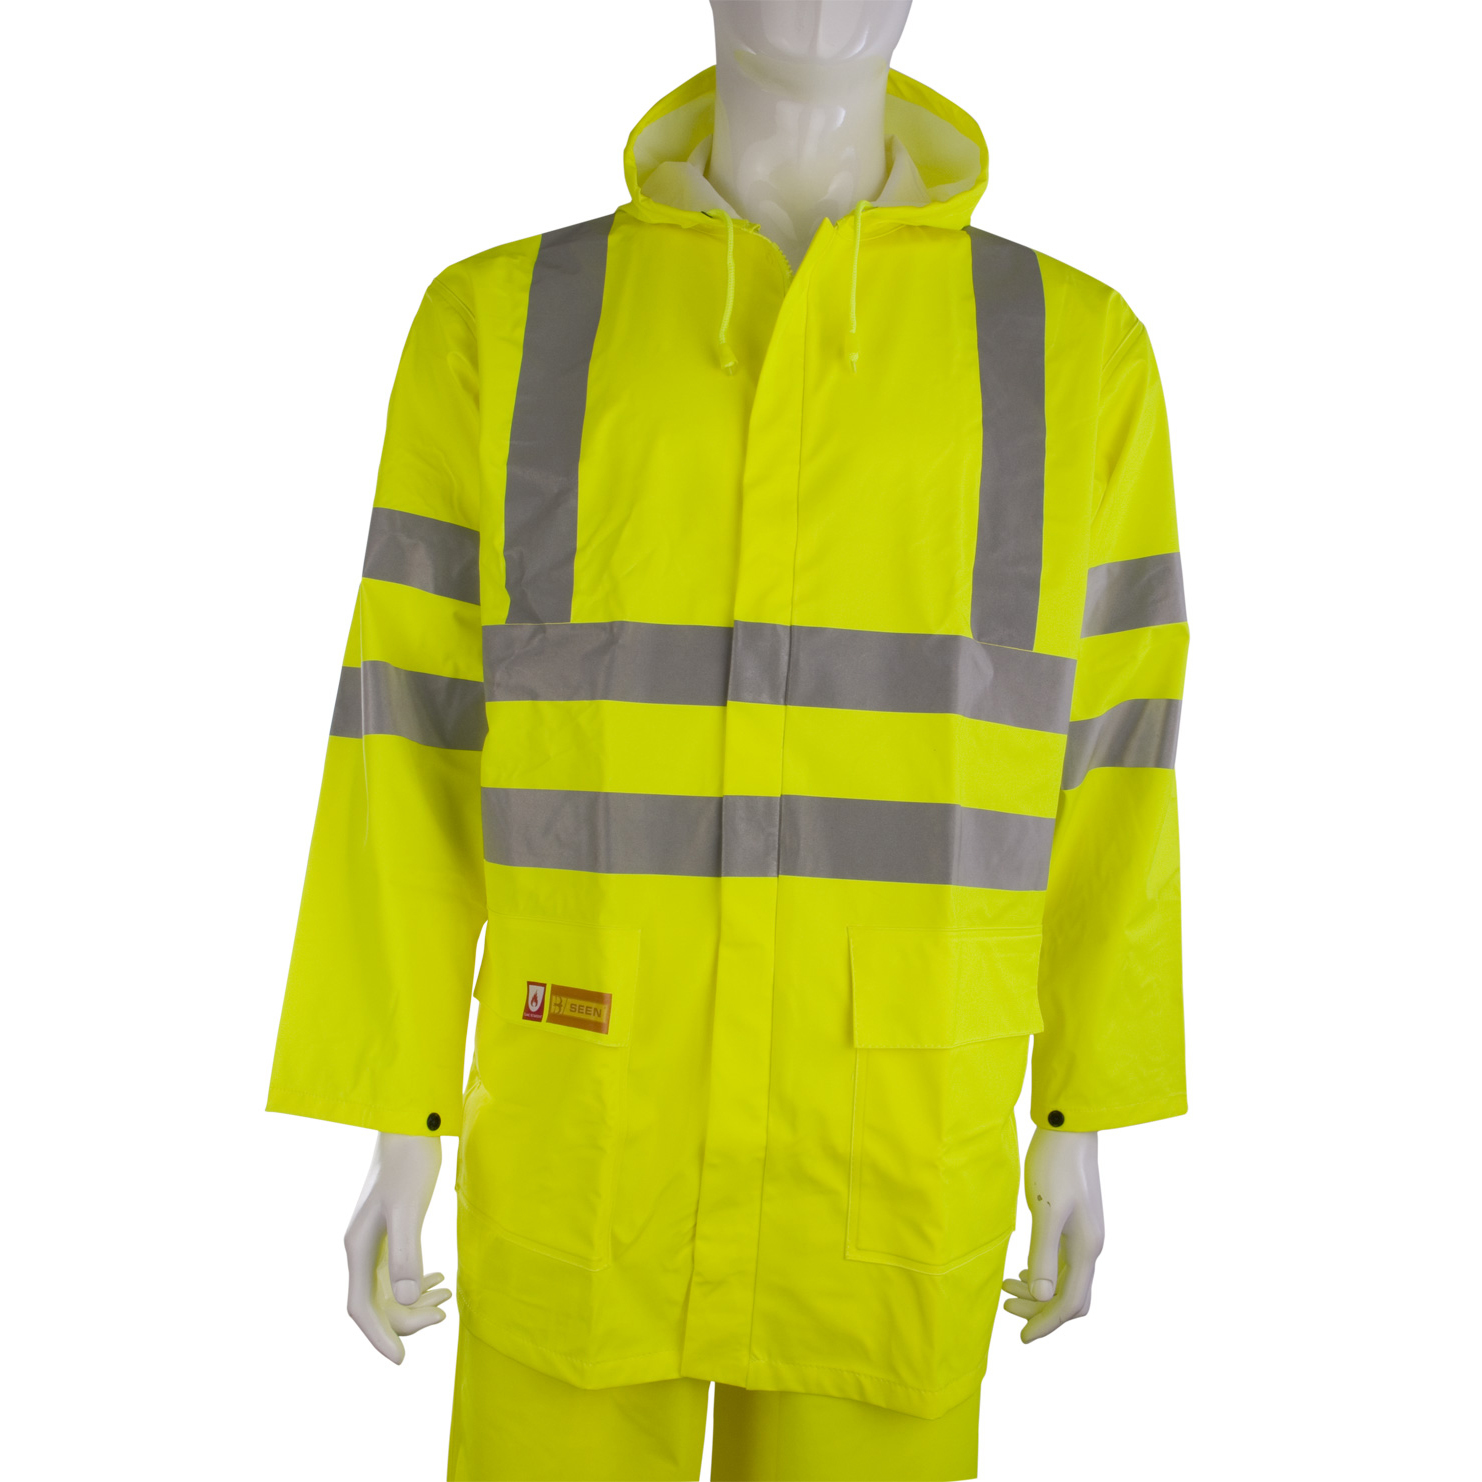 B-Seen Fire Retardant Jacket Anti-static Medium Sat Yellow Ref CFRLR55SYM *Up to 3 Day Leadtime*